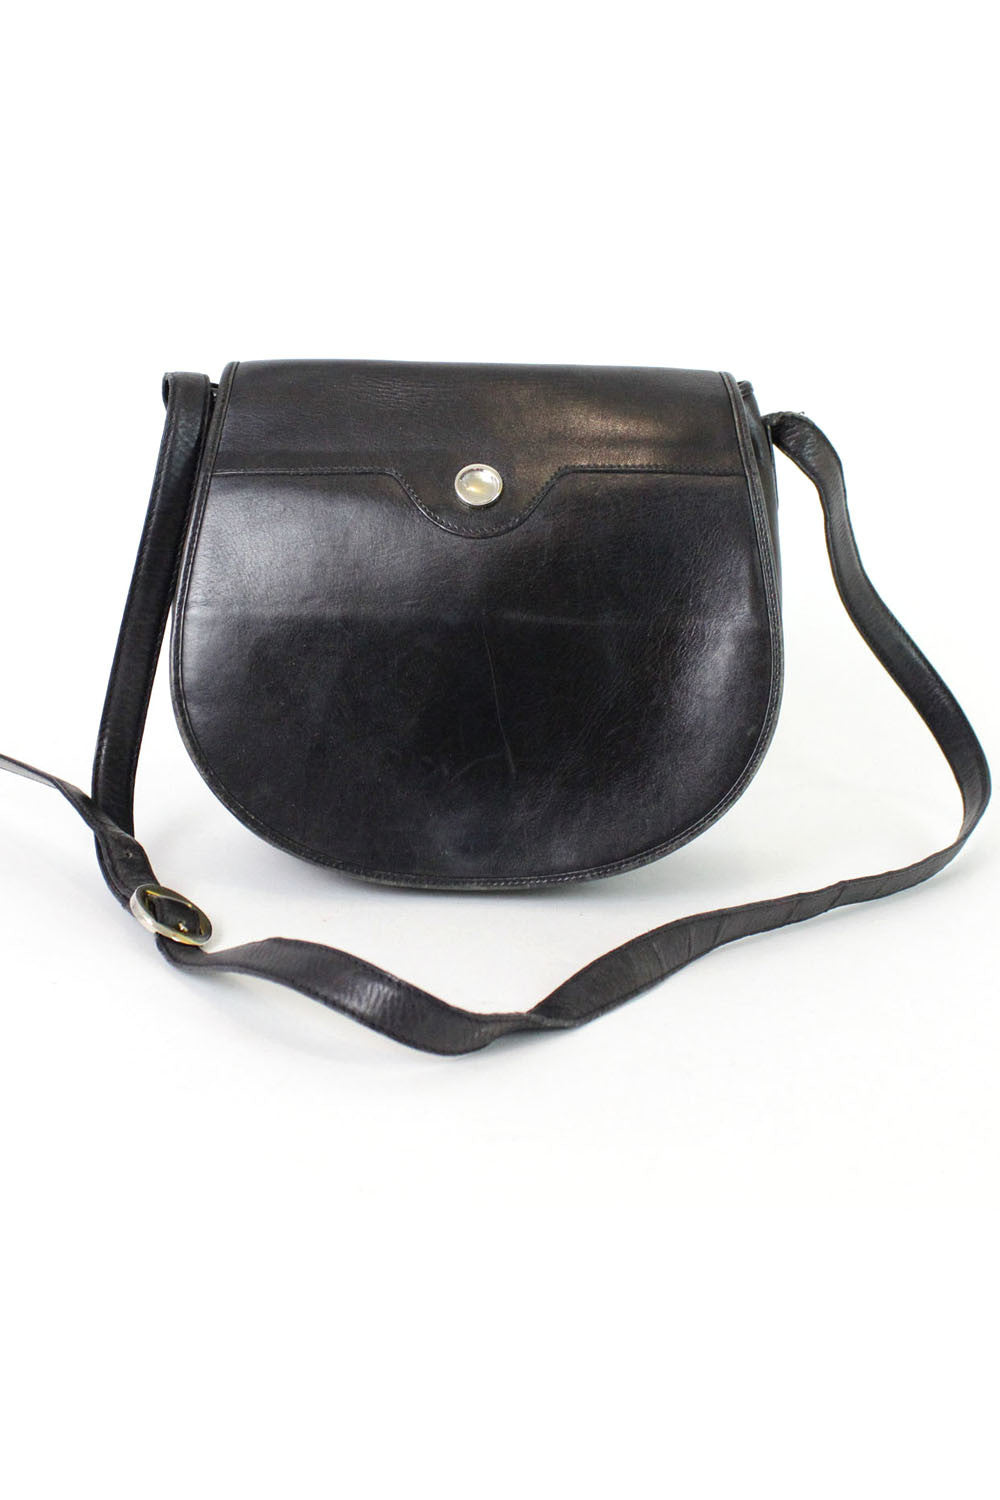 Movado Jet Black Saddle Bag